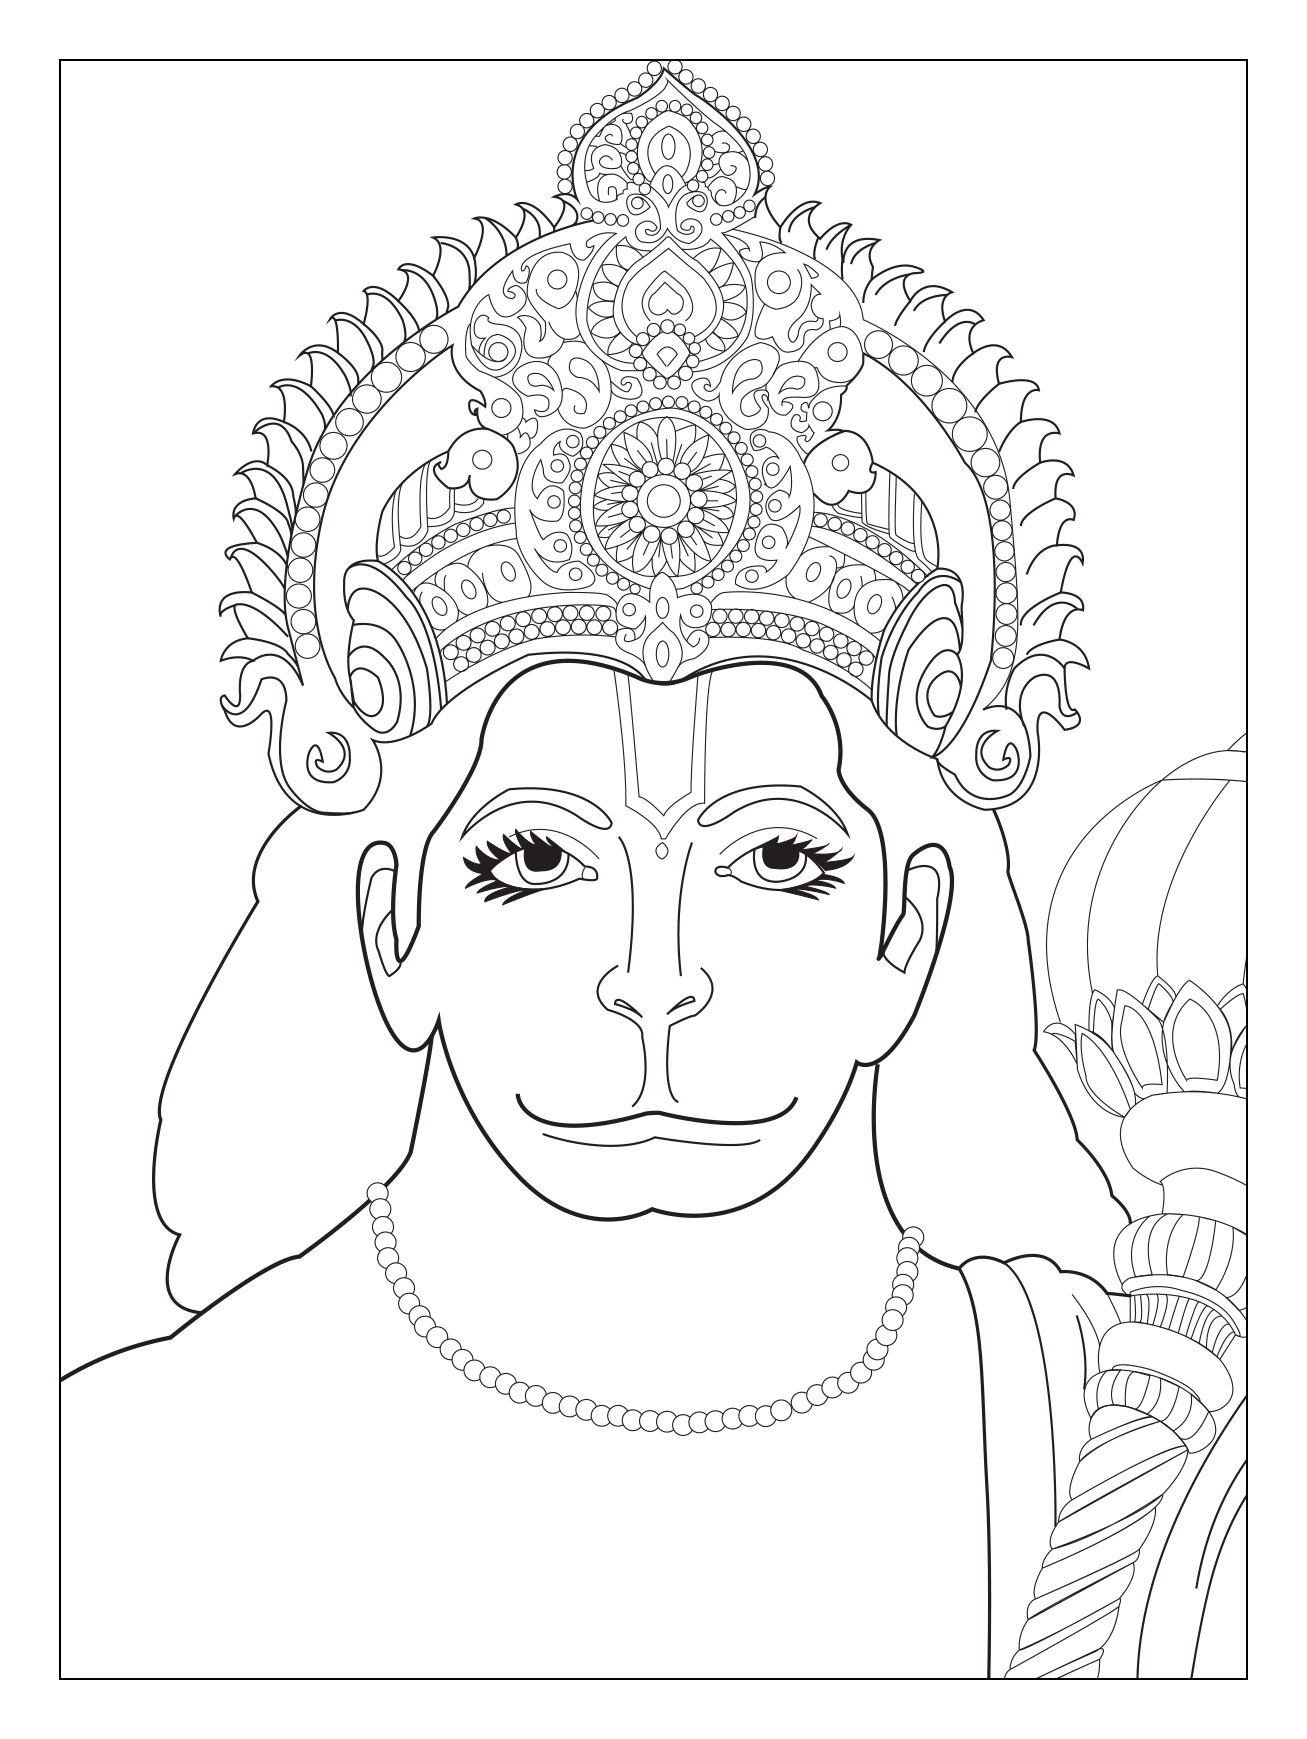 Hindu Elephant Coloring Pages At Getcolorings